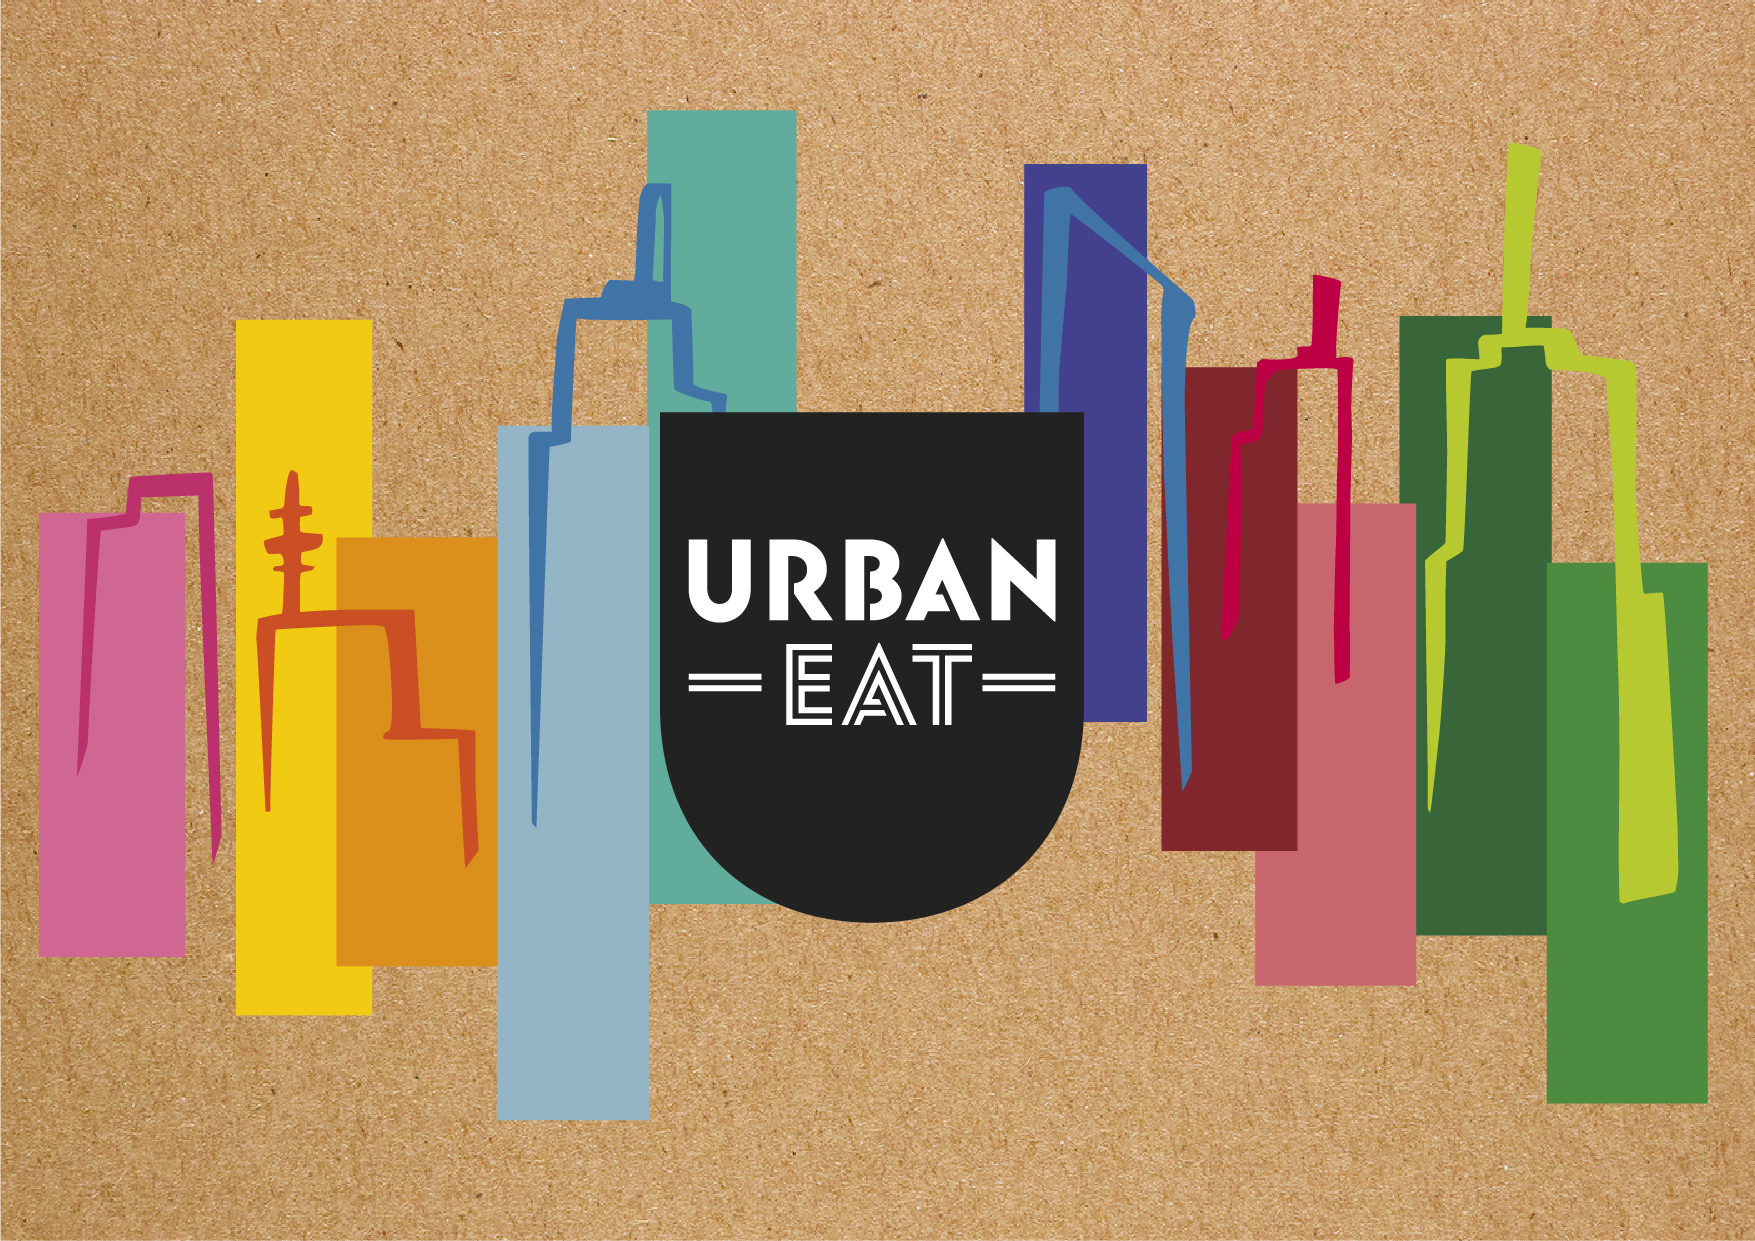 Urban eat logo